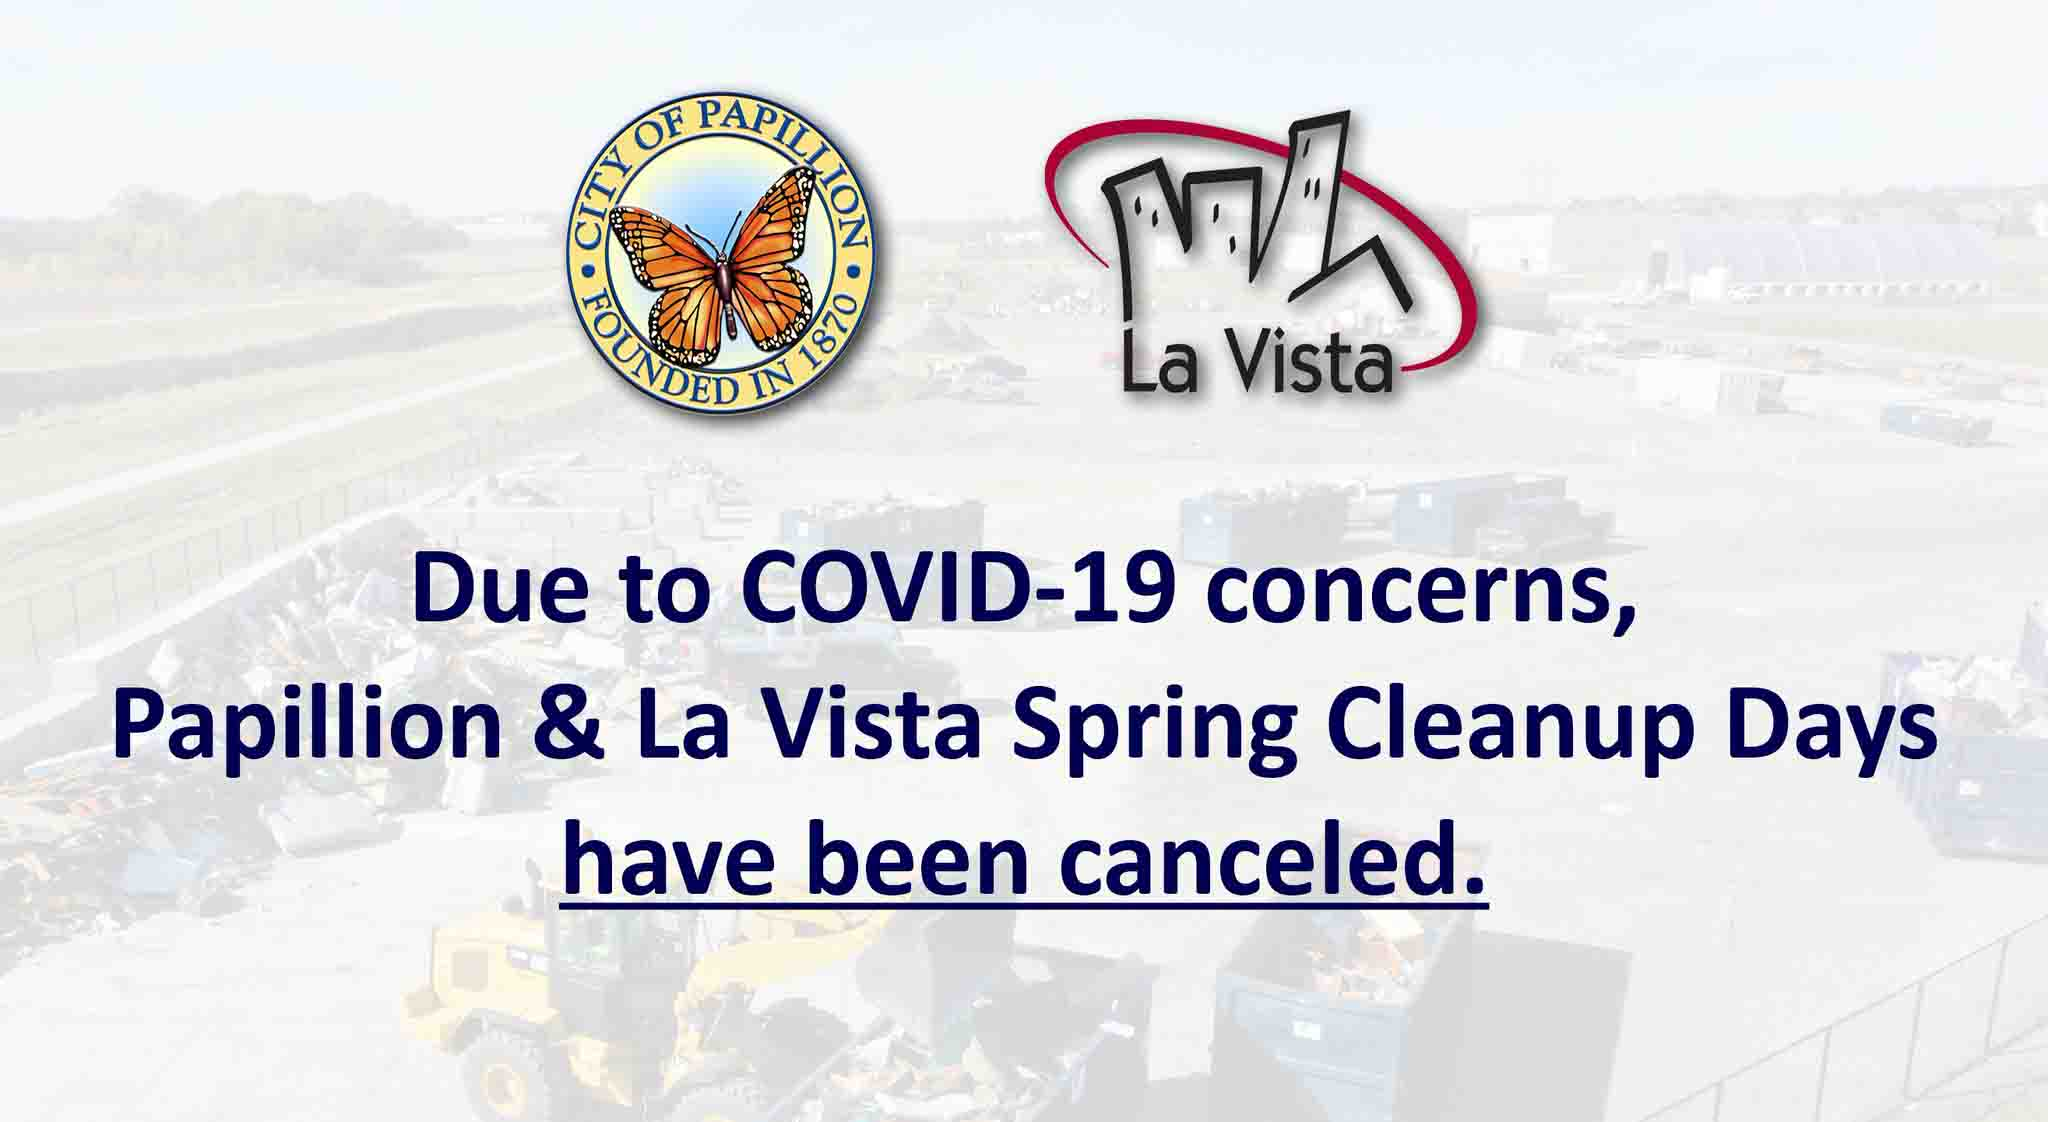 Clean up days cancellation